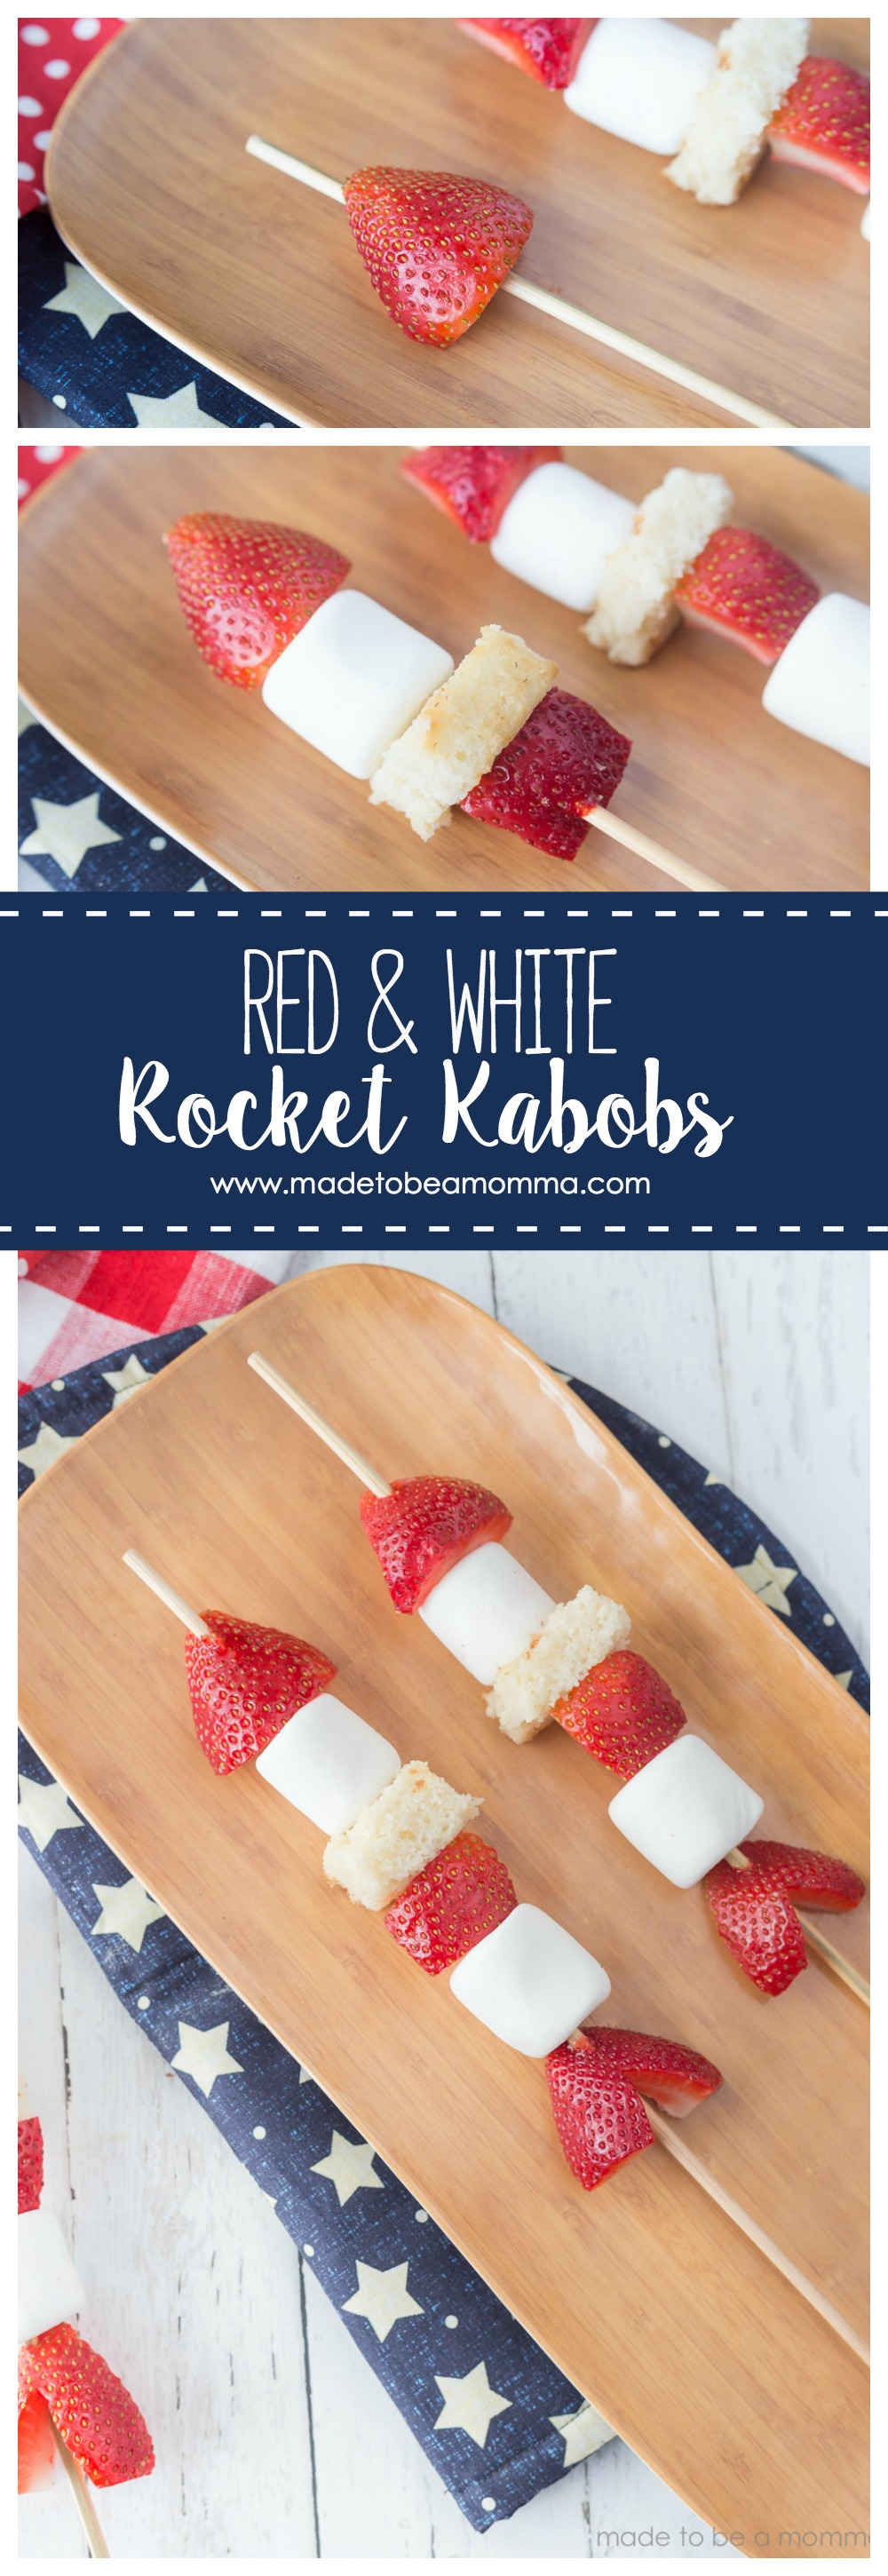 Red and White Rocket Kabobs Made to be a Momma